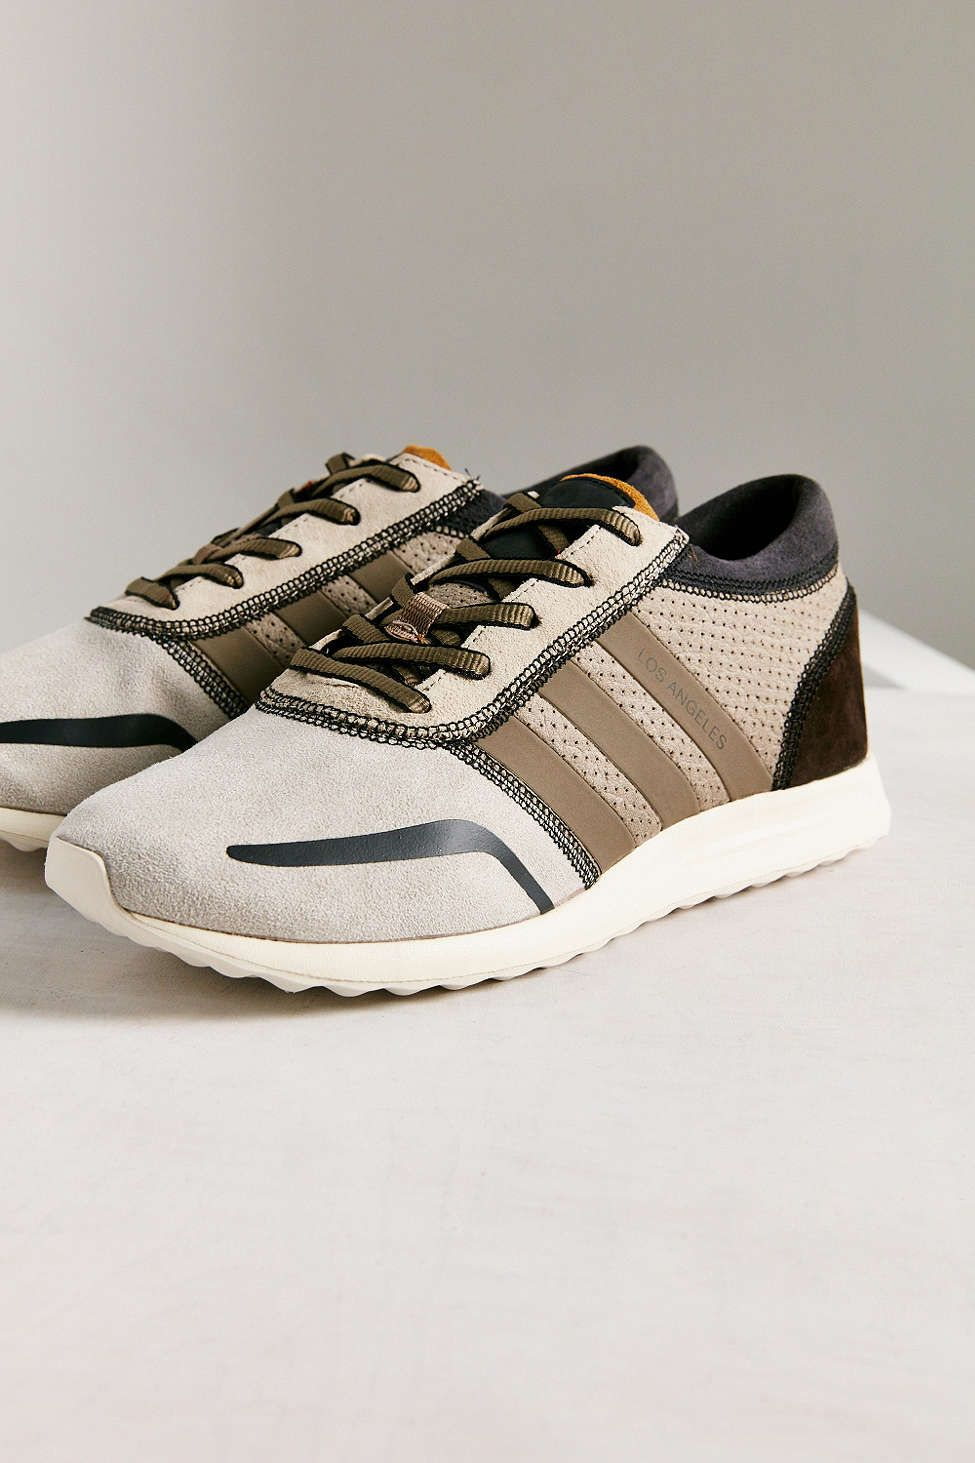 premium selection 36c0e 733b5 adidas Originals Los Angeles Pack Earth Tones Trendy Womens Sneakers, Urban  Outfitters Style, Adidas